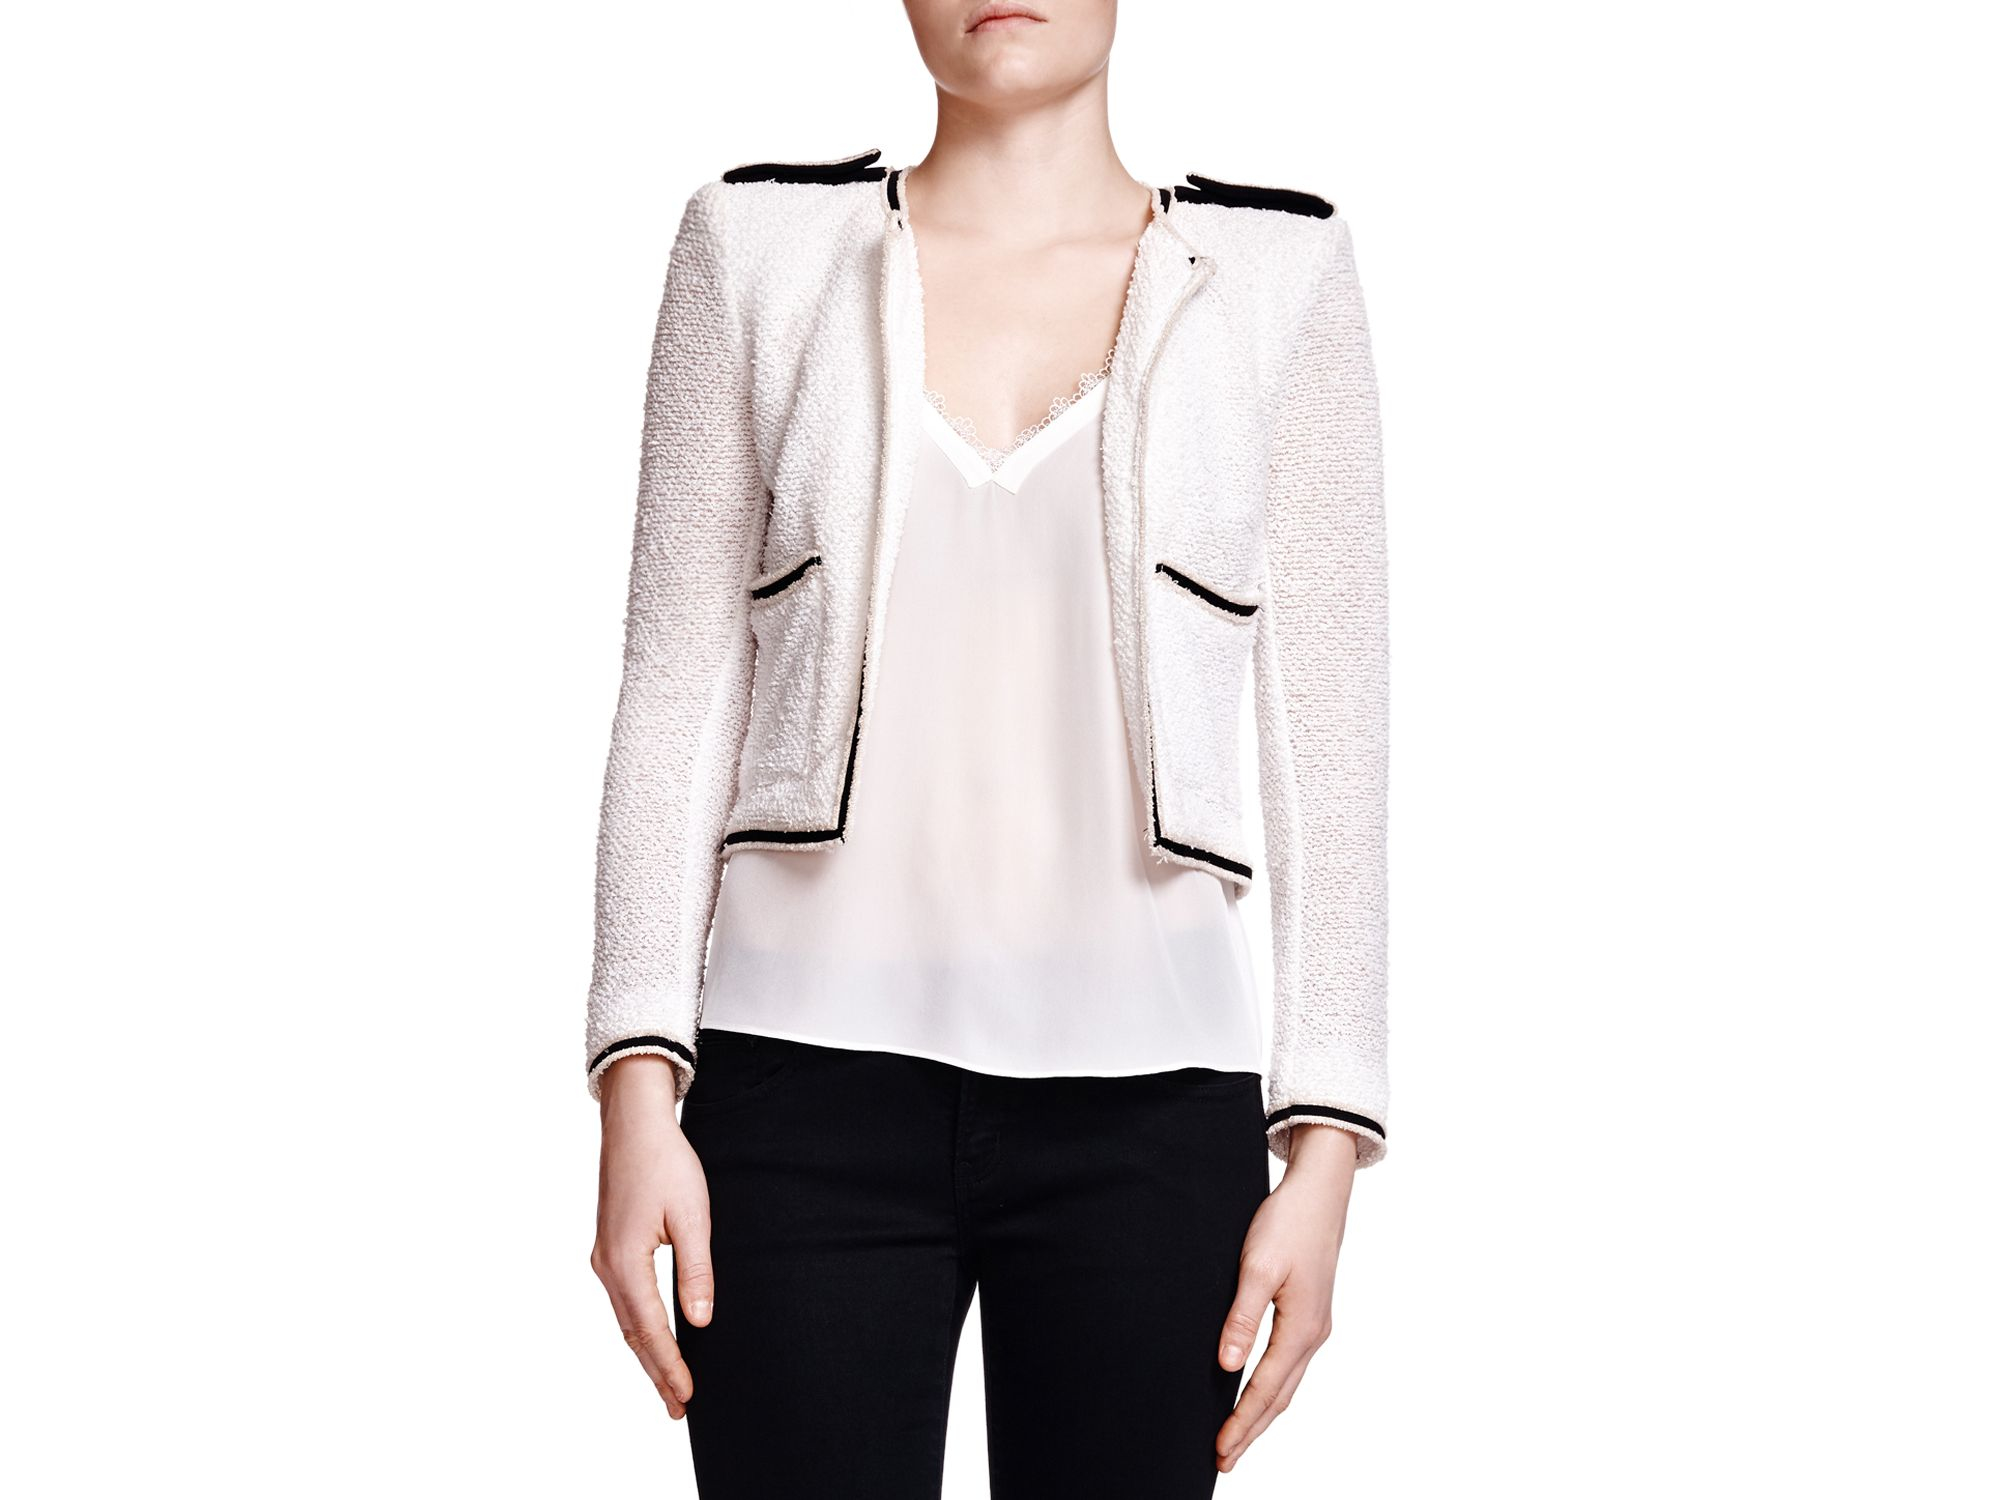 085e6014cf The Kooples Summer Lace Jacket in White - Lyst